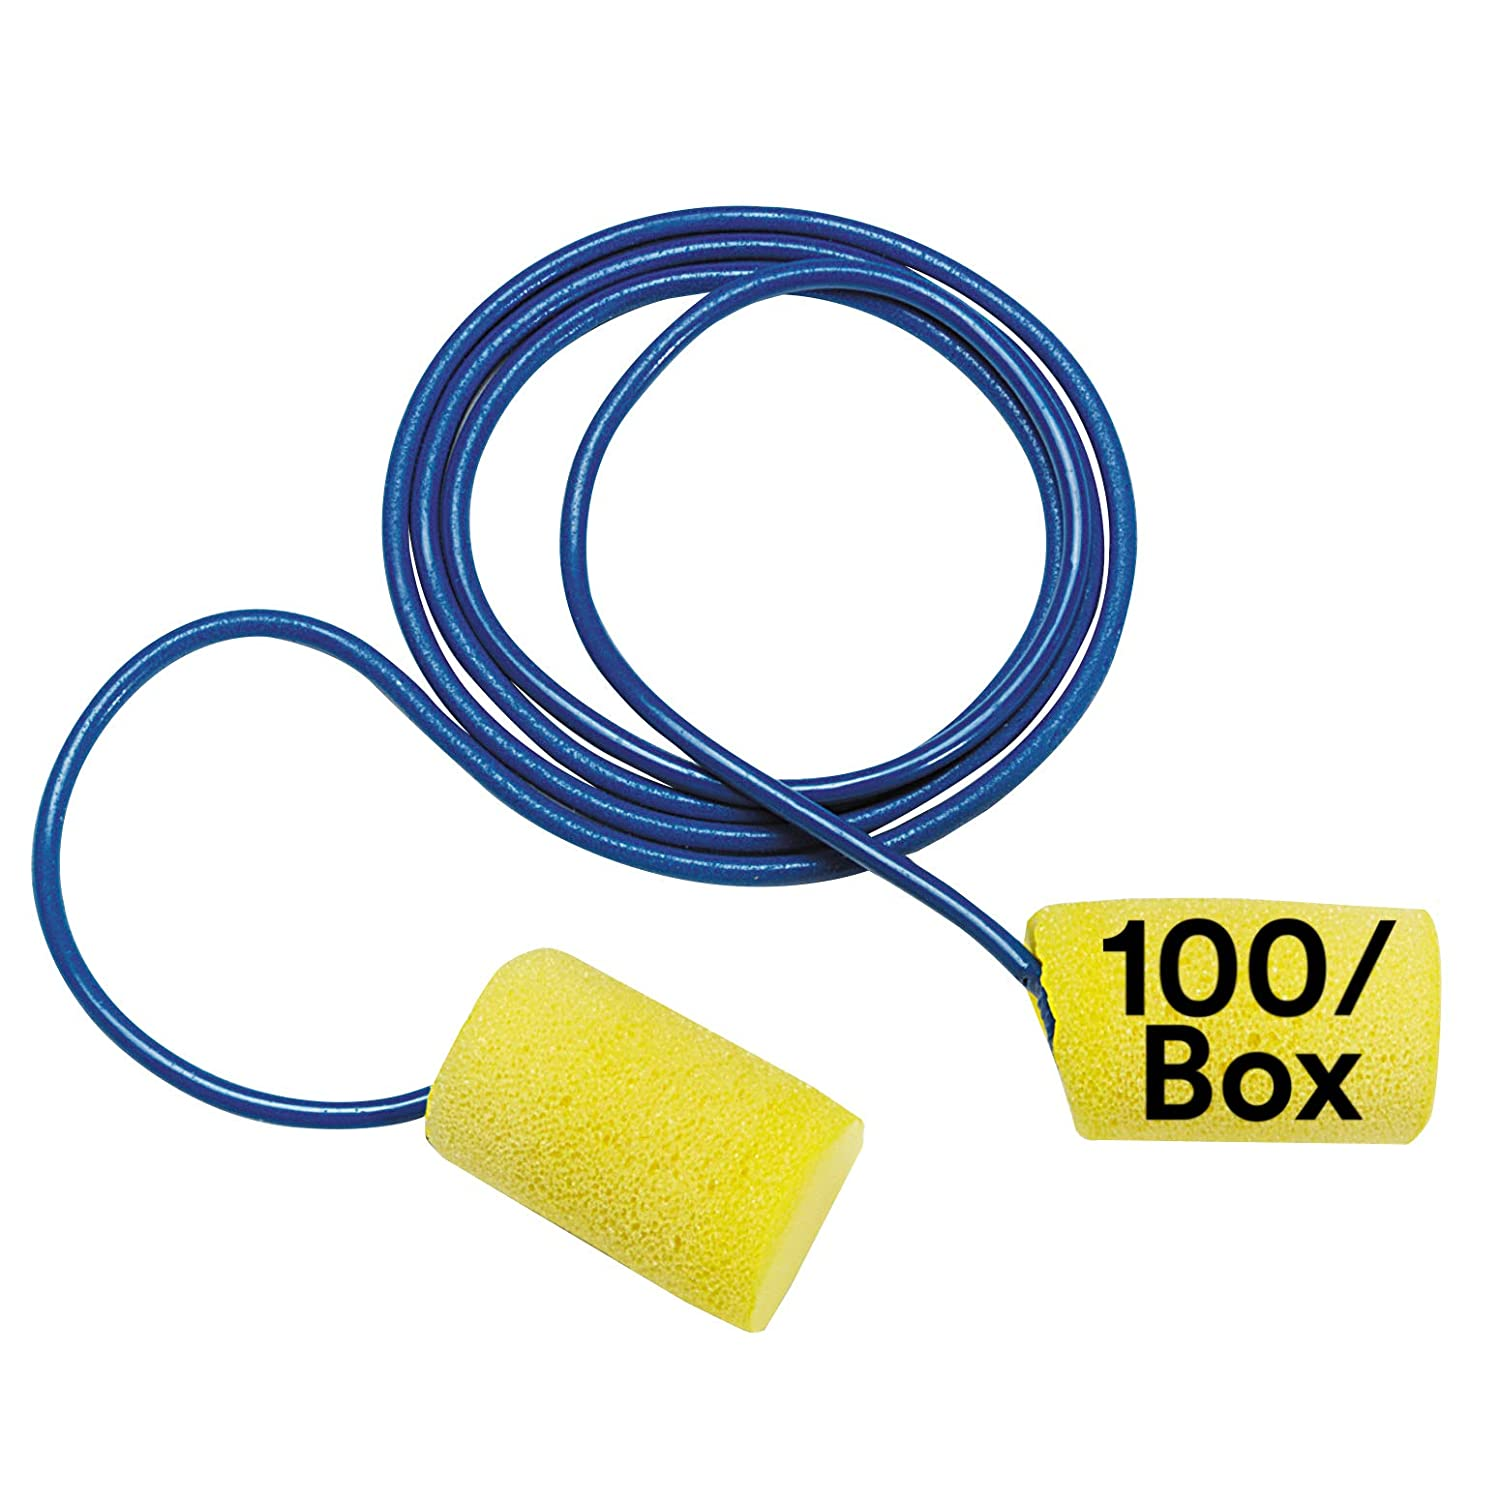 3M Ear Plugs, 75/Box, E-A-R Classic 311-1110, Corded, Disposable, Foam, NRR 29, For Drilling, Grinding, Machining, Sawing, Sanding, Welding, 1/Paper Bag, yellow: Science Lab Ear Plugs: Industrial & Scientific